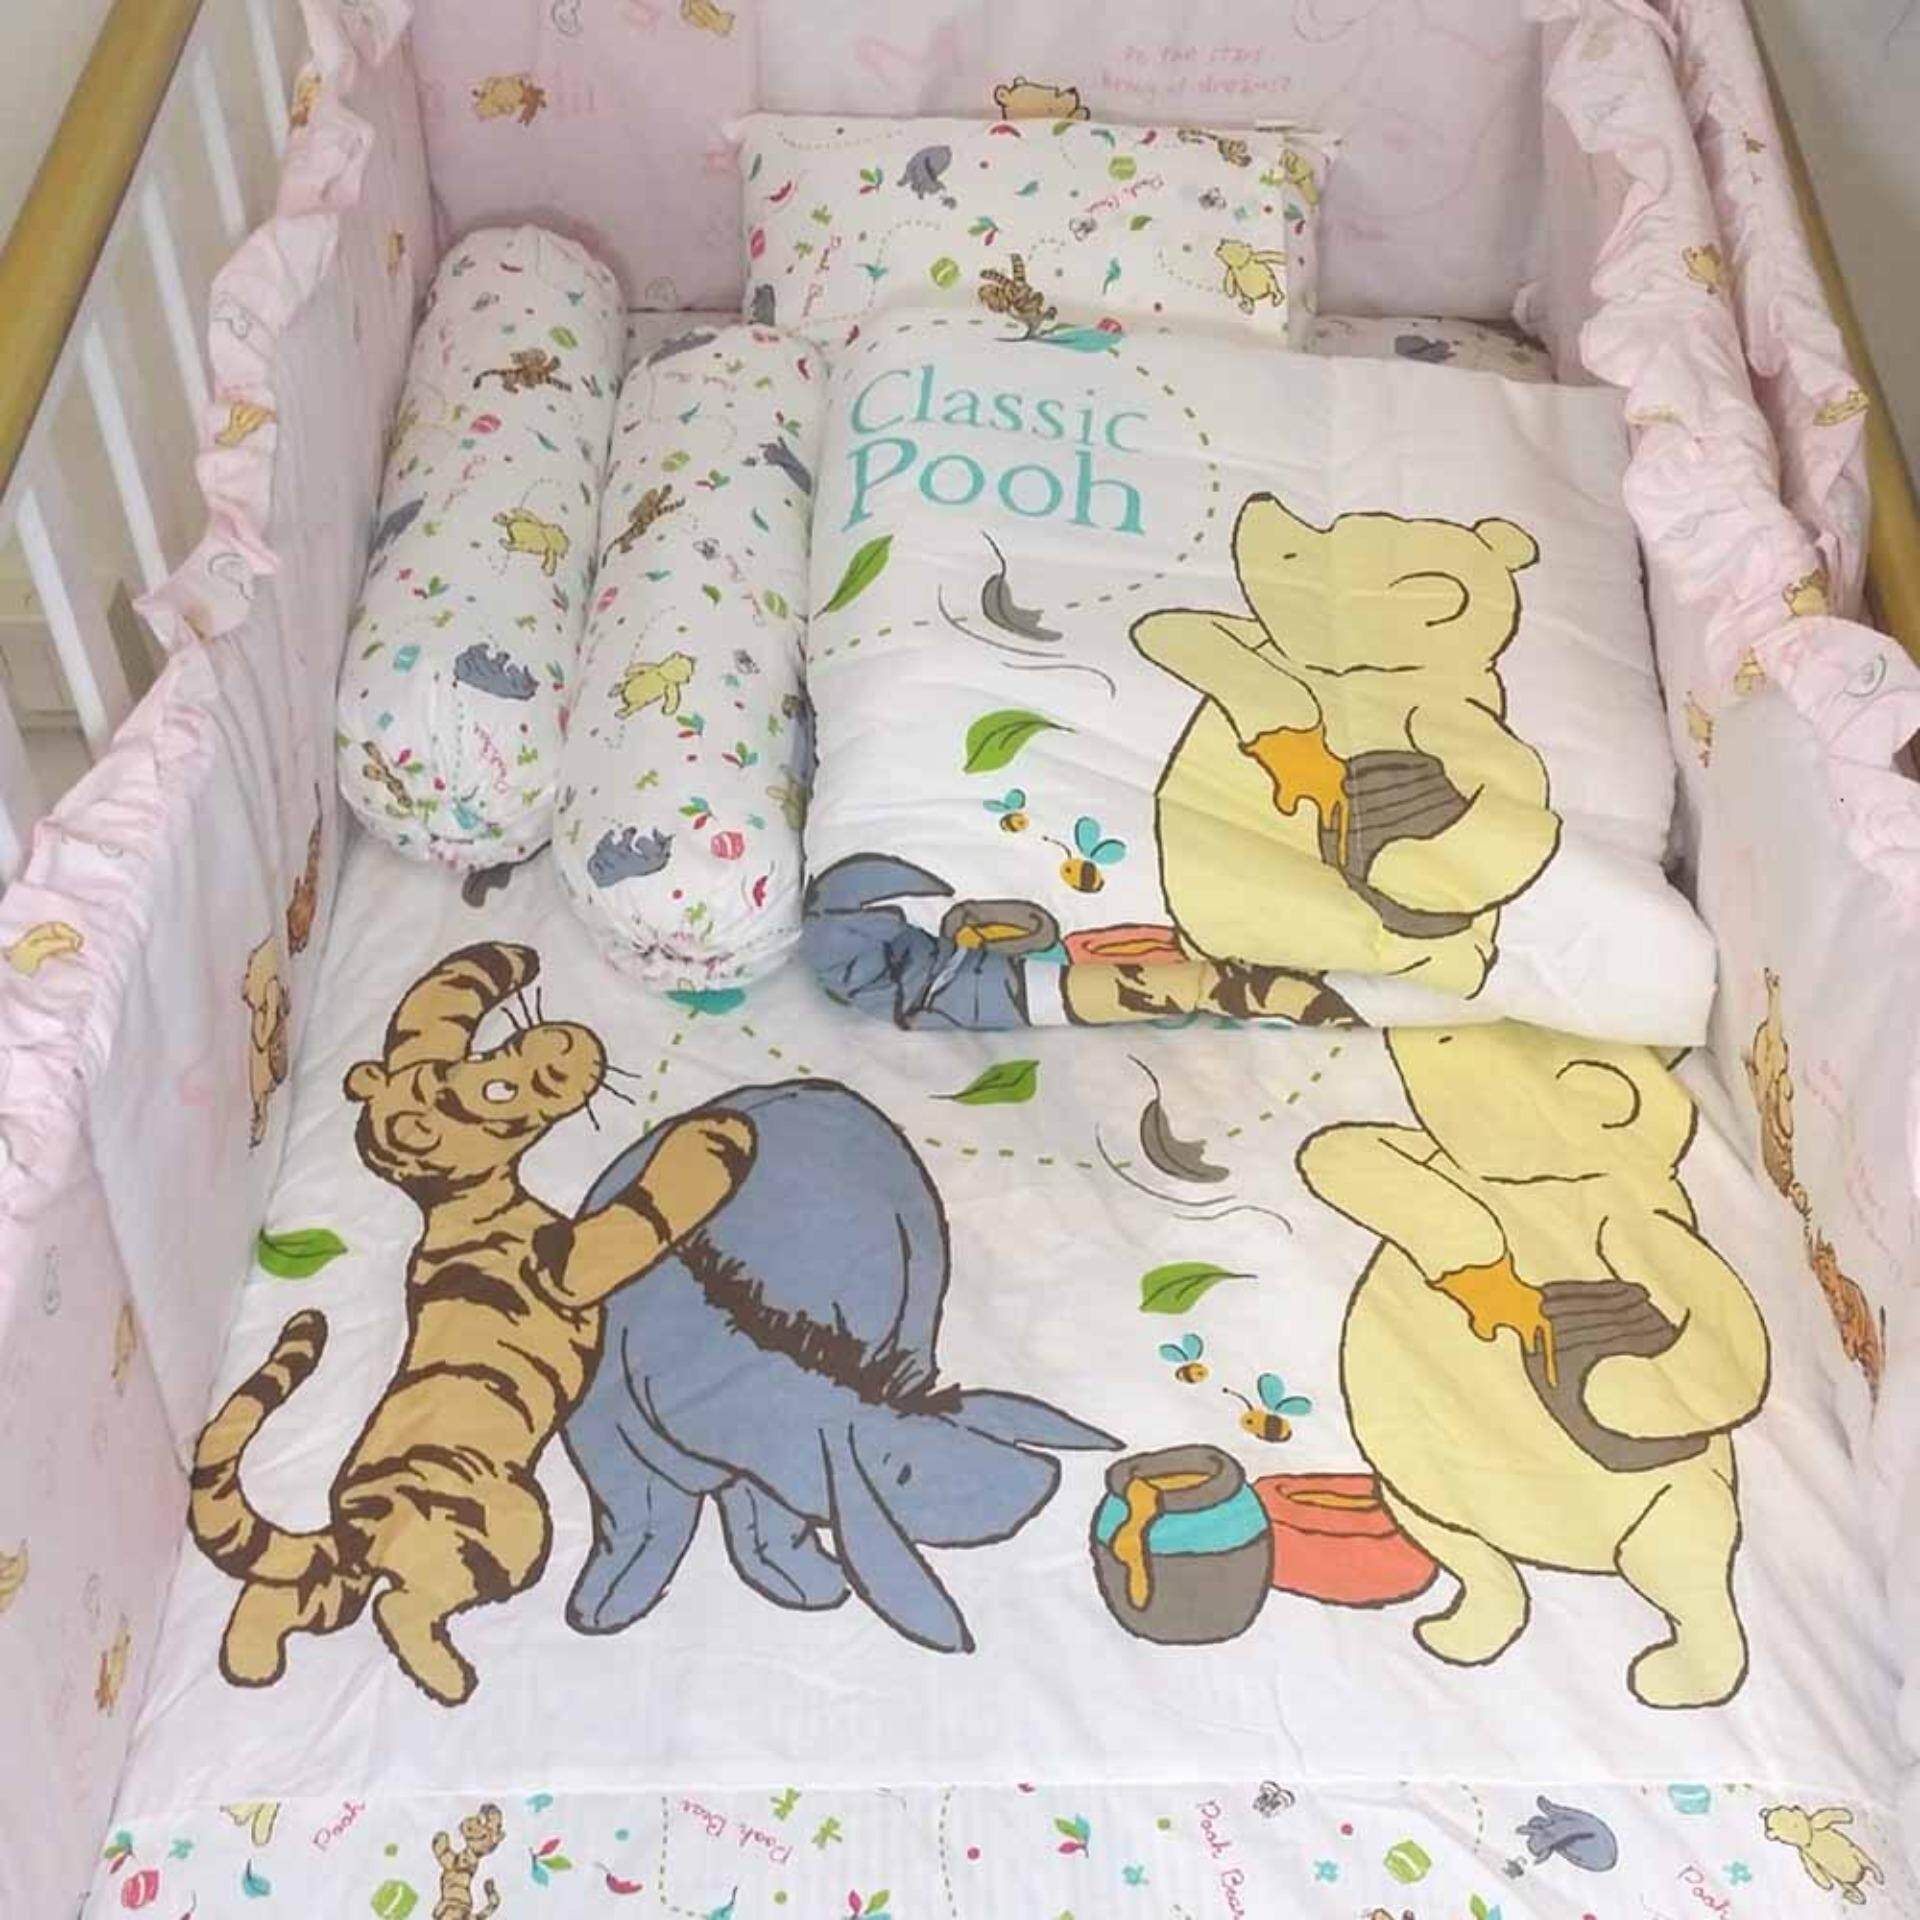 Disney Classic Pooh 5-in-1 Bedding Set c/w Comforter, Fitted Crib Sheet, Pillow and Bolster (CPST-205)